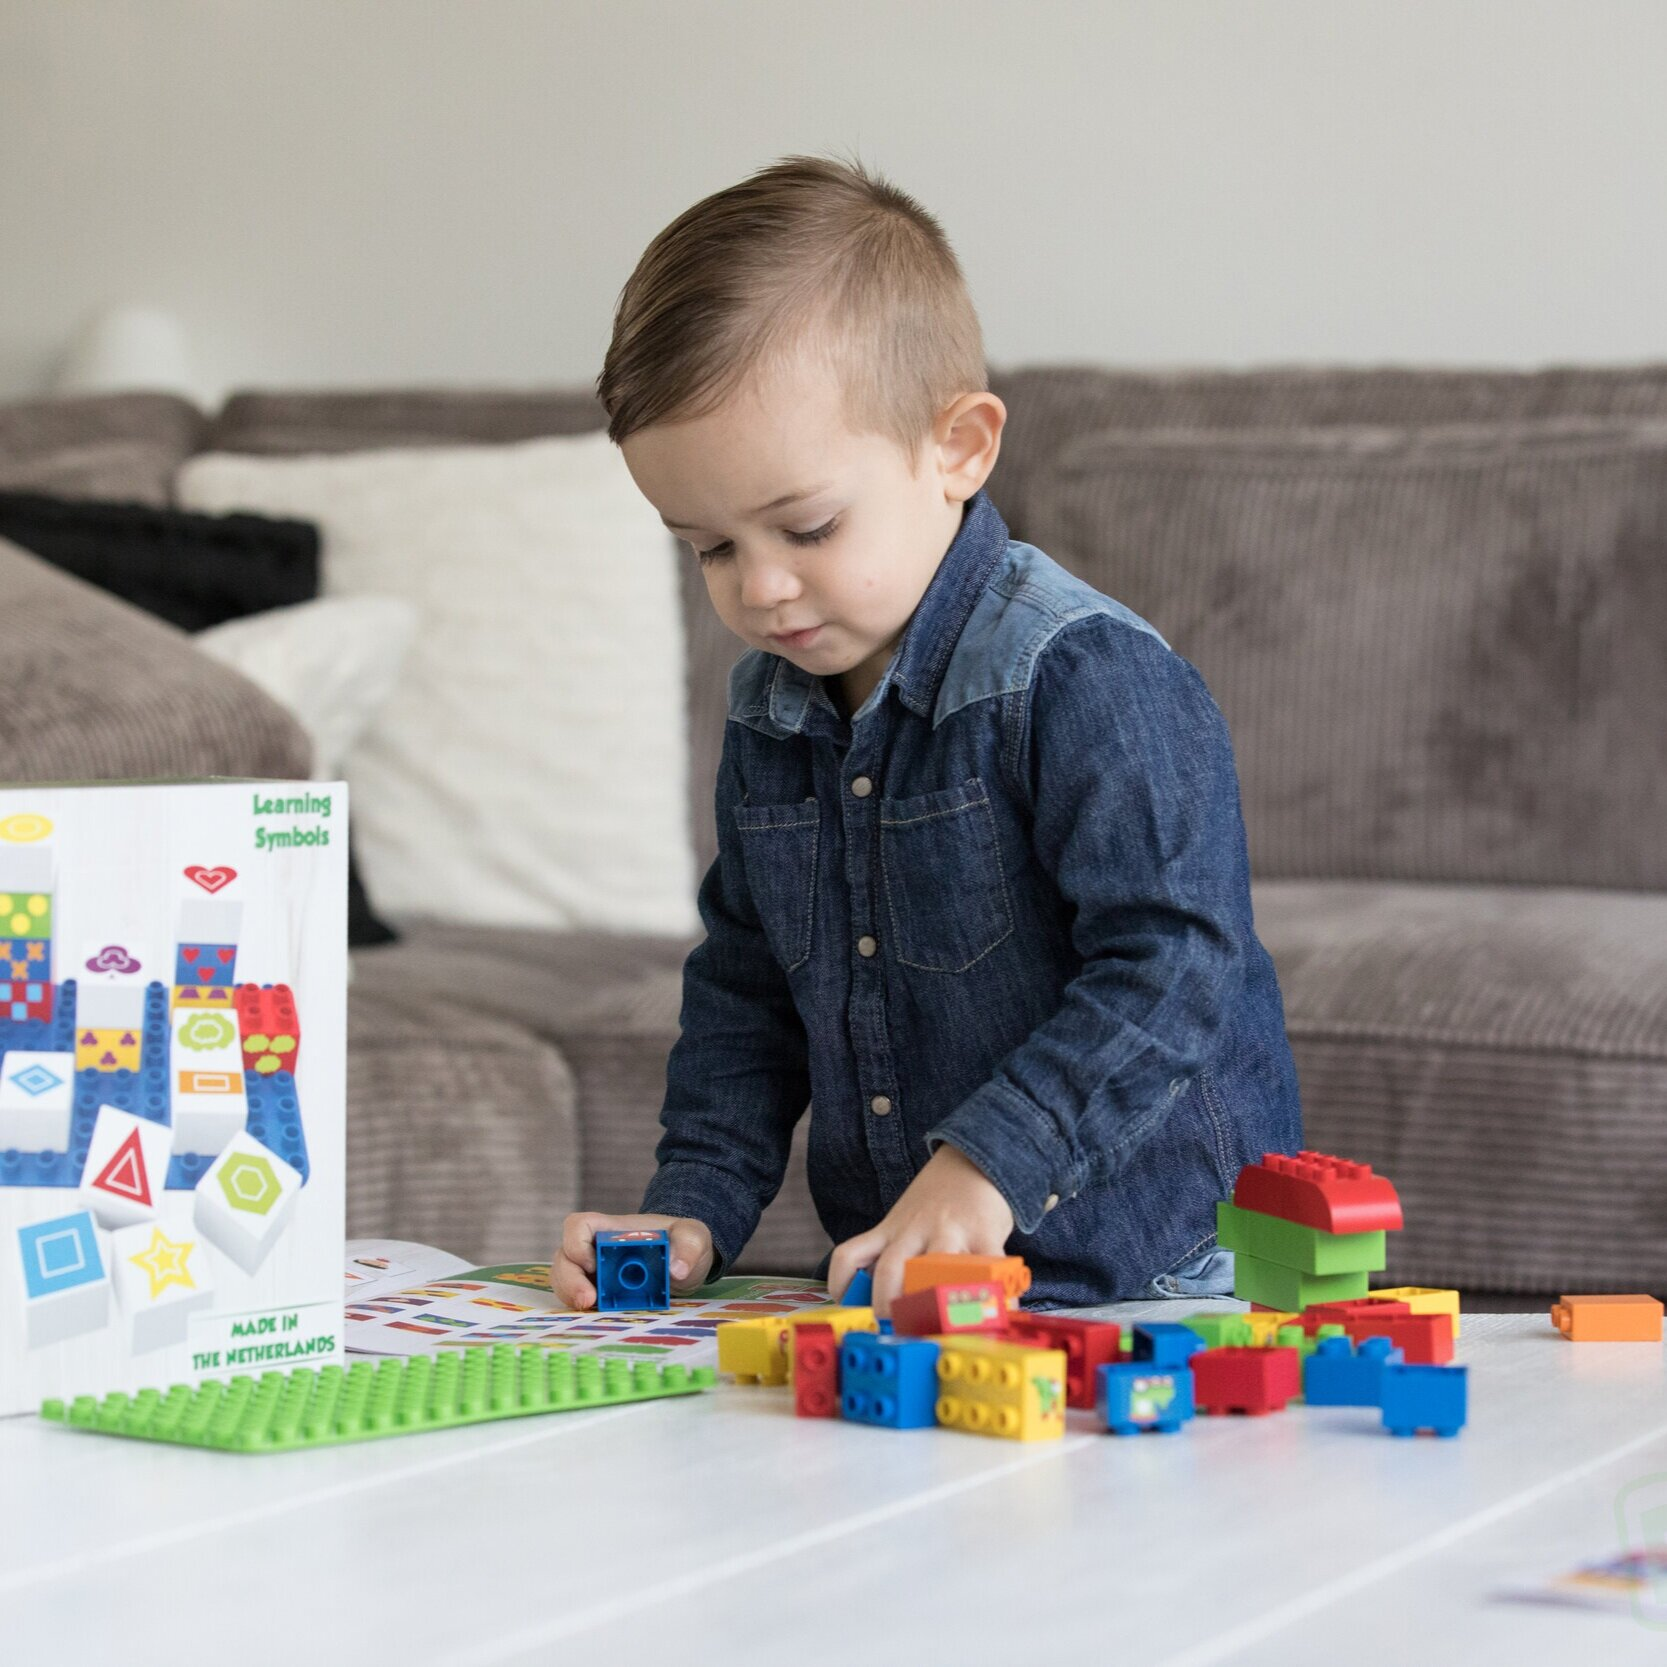 BiOBUDDi Blocks - BiOBUDDi are Building Blocks Made from Sugarcane! From Building sets to animals, buildings, figures, and vehicles you can be sure to build a great collection for your little ones to play with.Click the image to see our range >>>